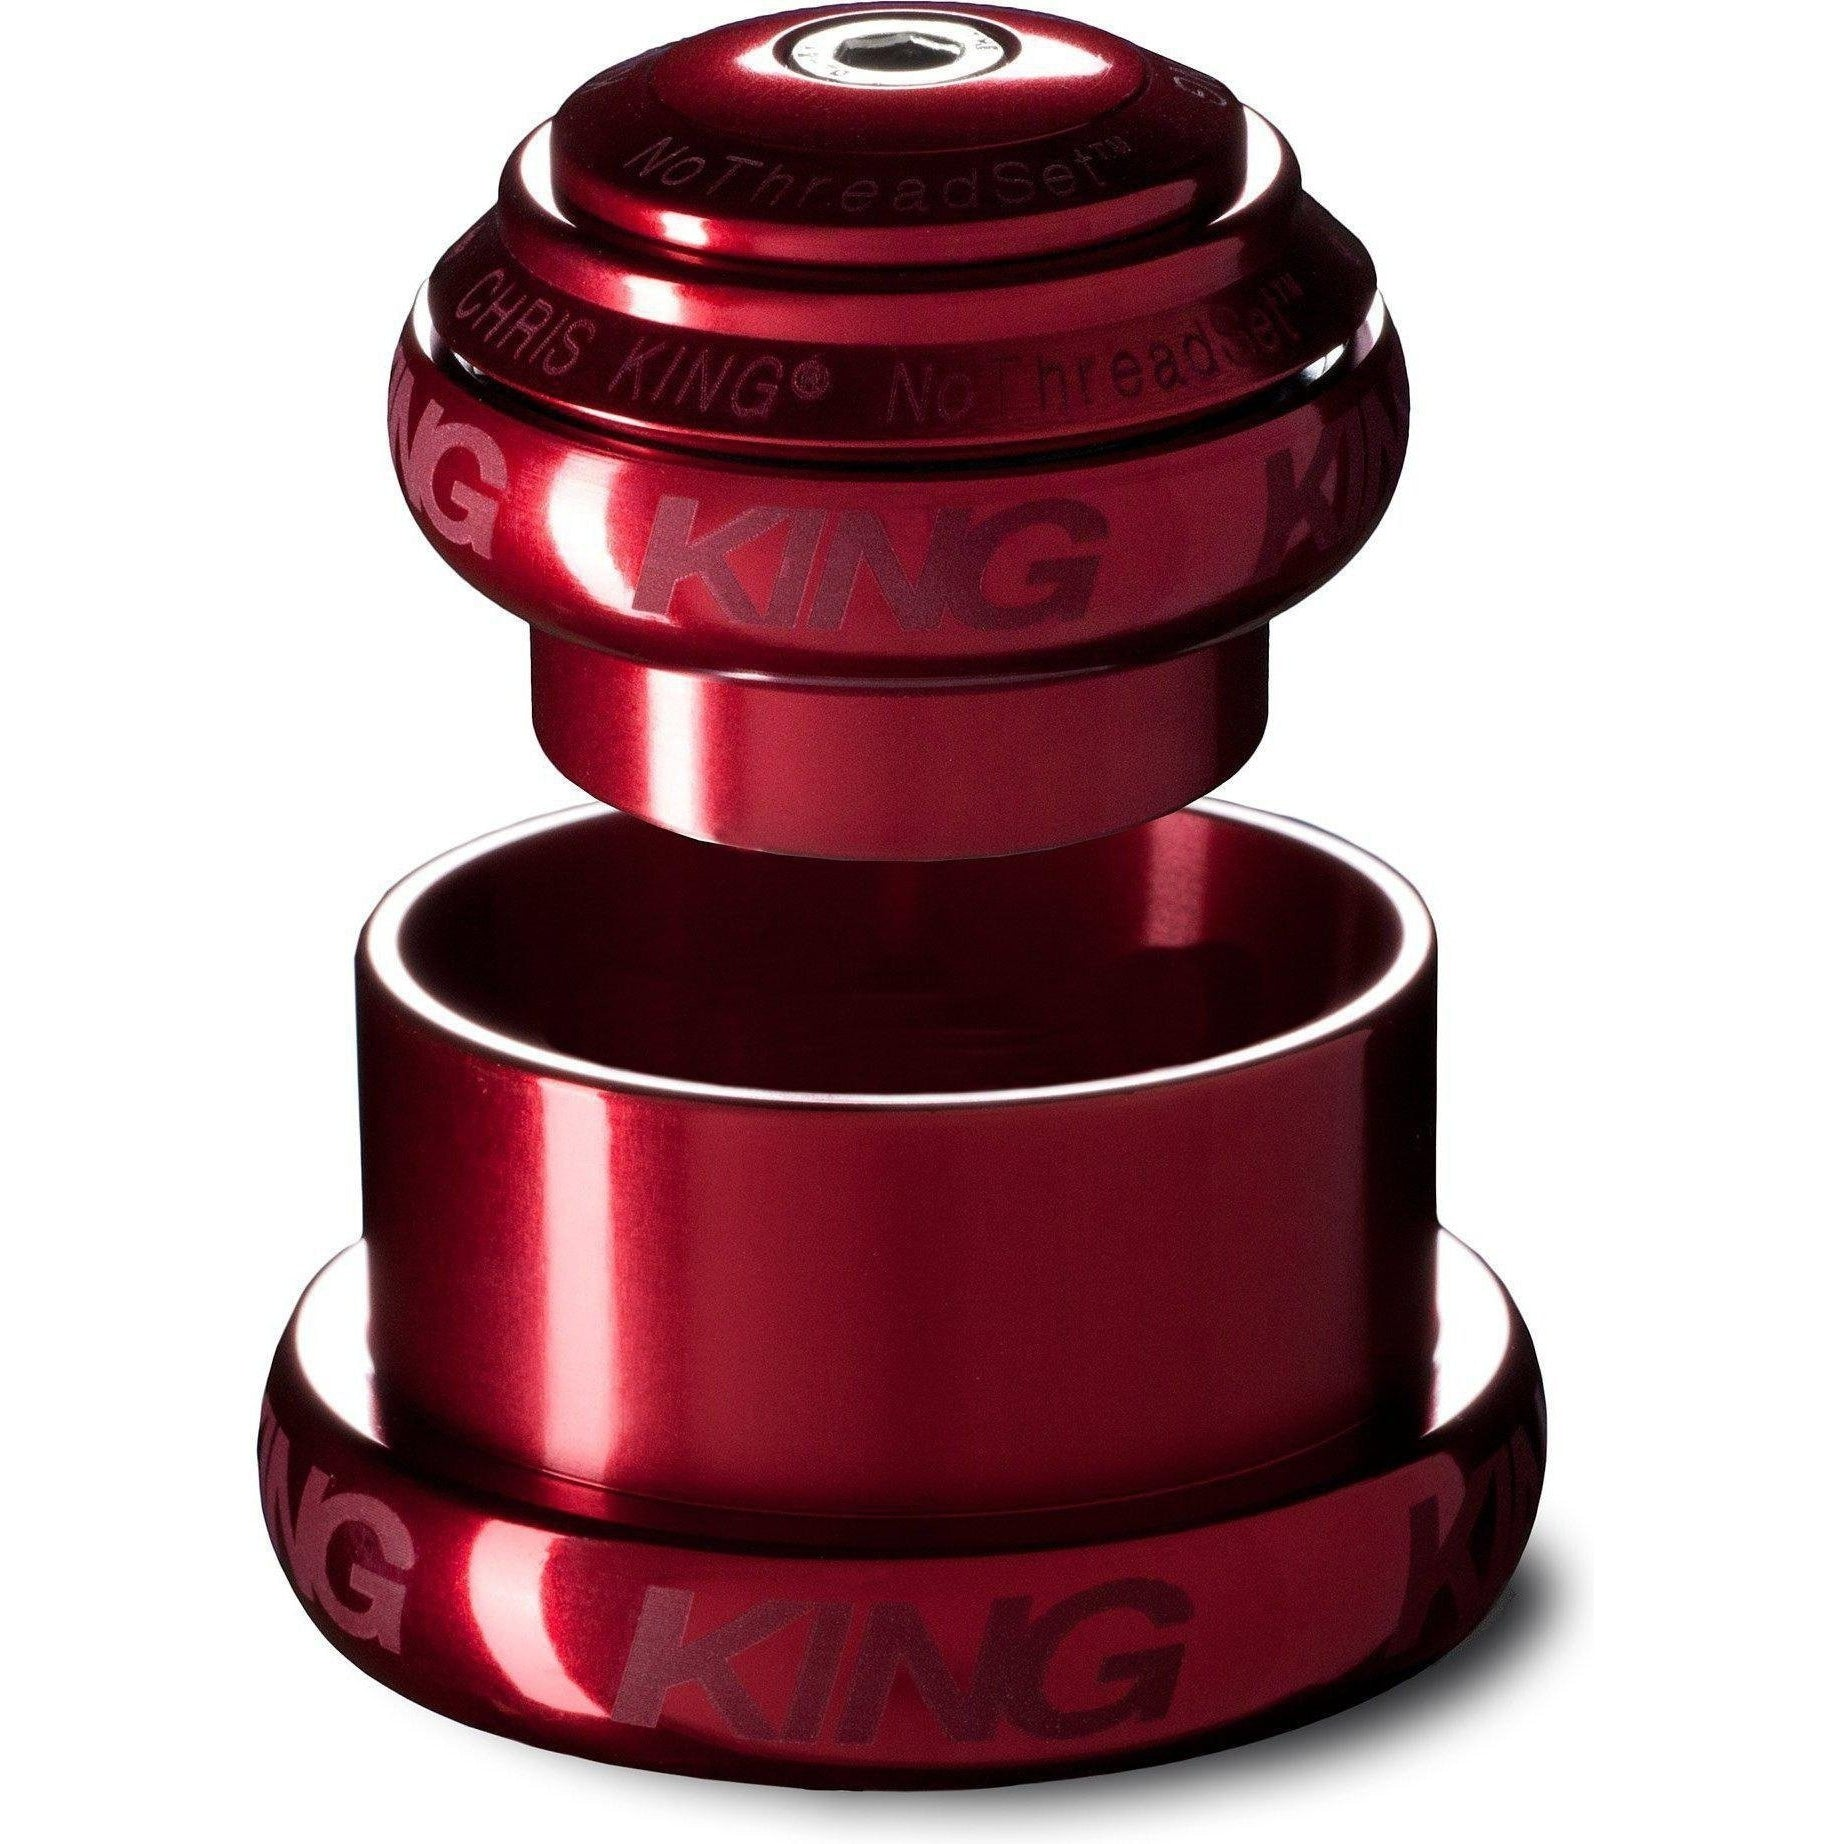 Chris King-Chris King NoThreadSet Tapered SV Headset-Red-1-1/8 to 1-1/2 - EC34/EC49-CKFR0047-saddleback-elite-performance-cycling